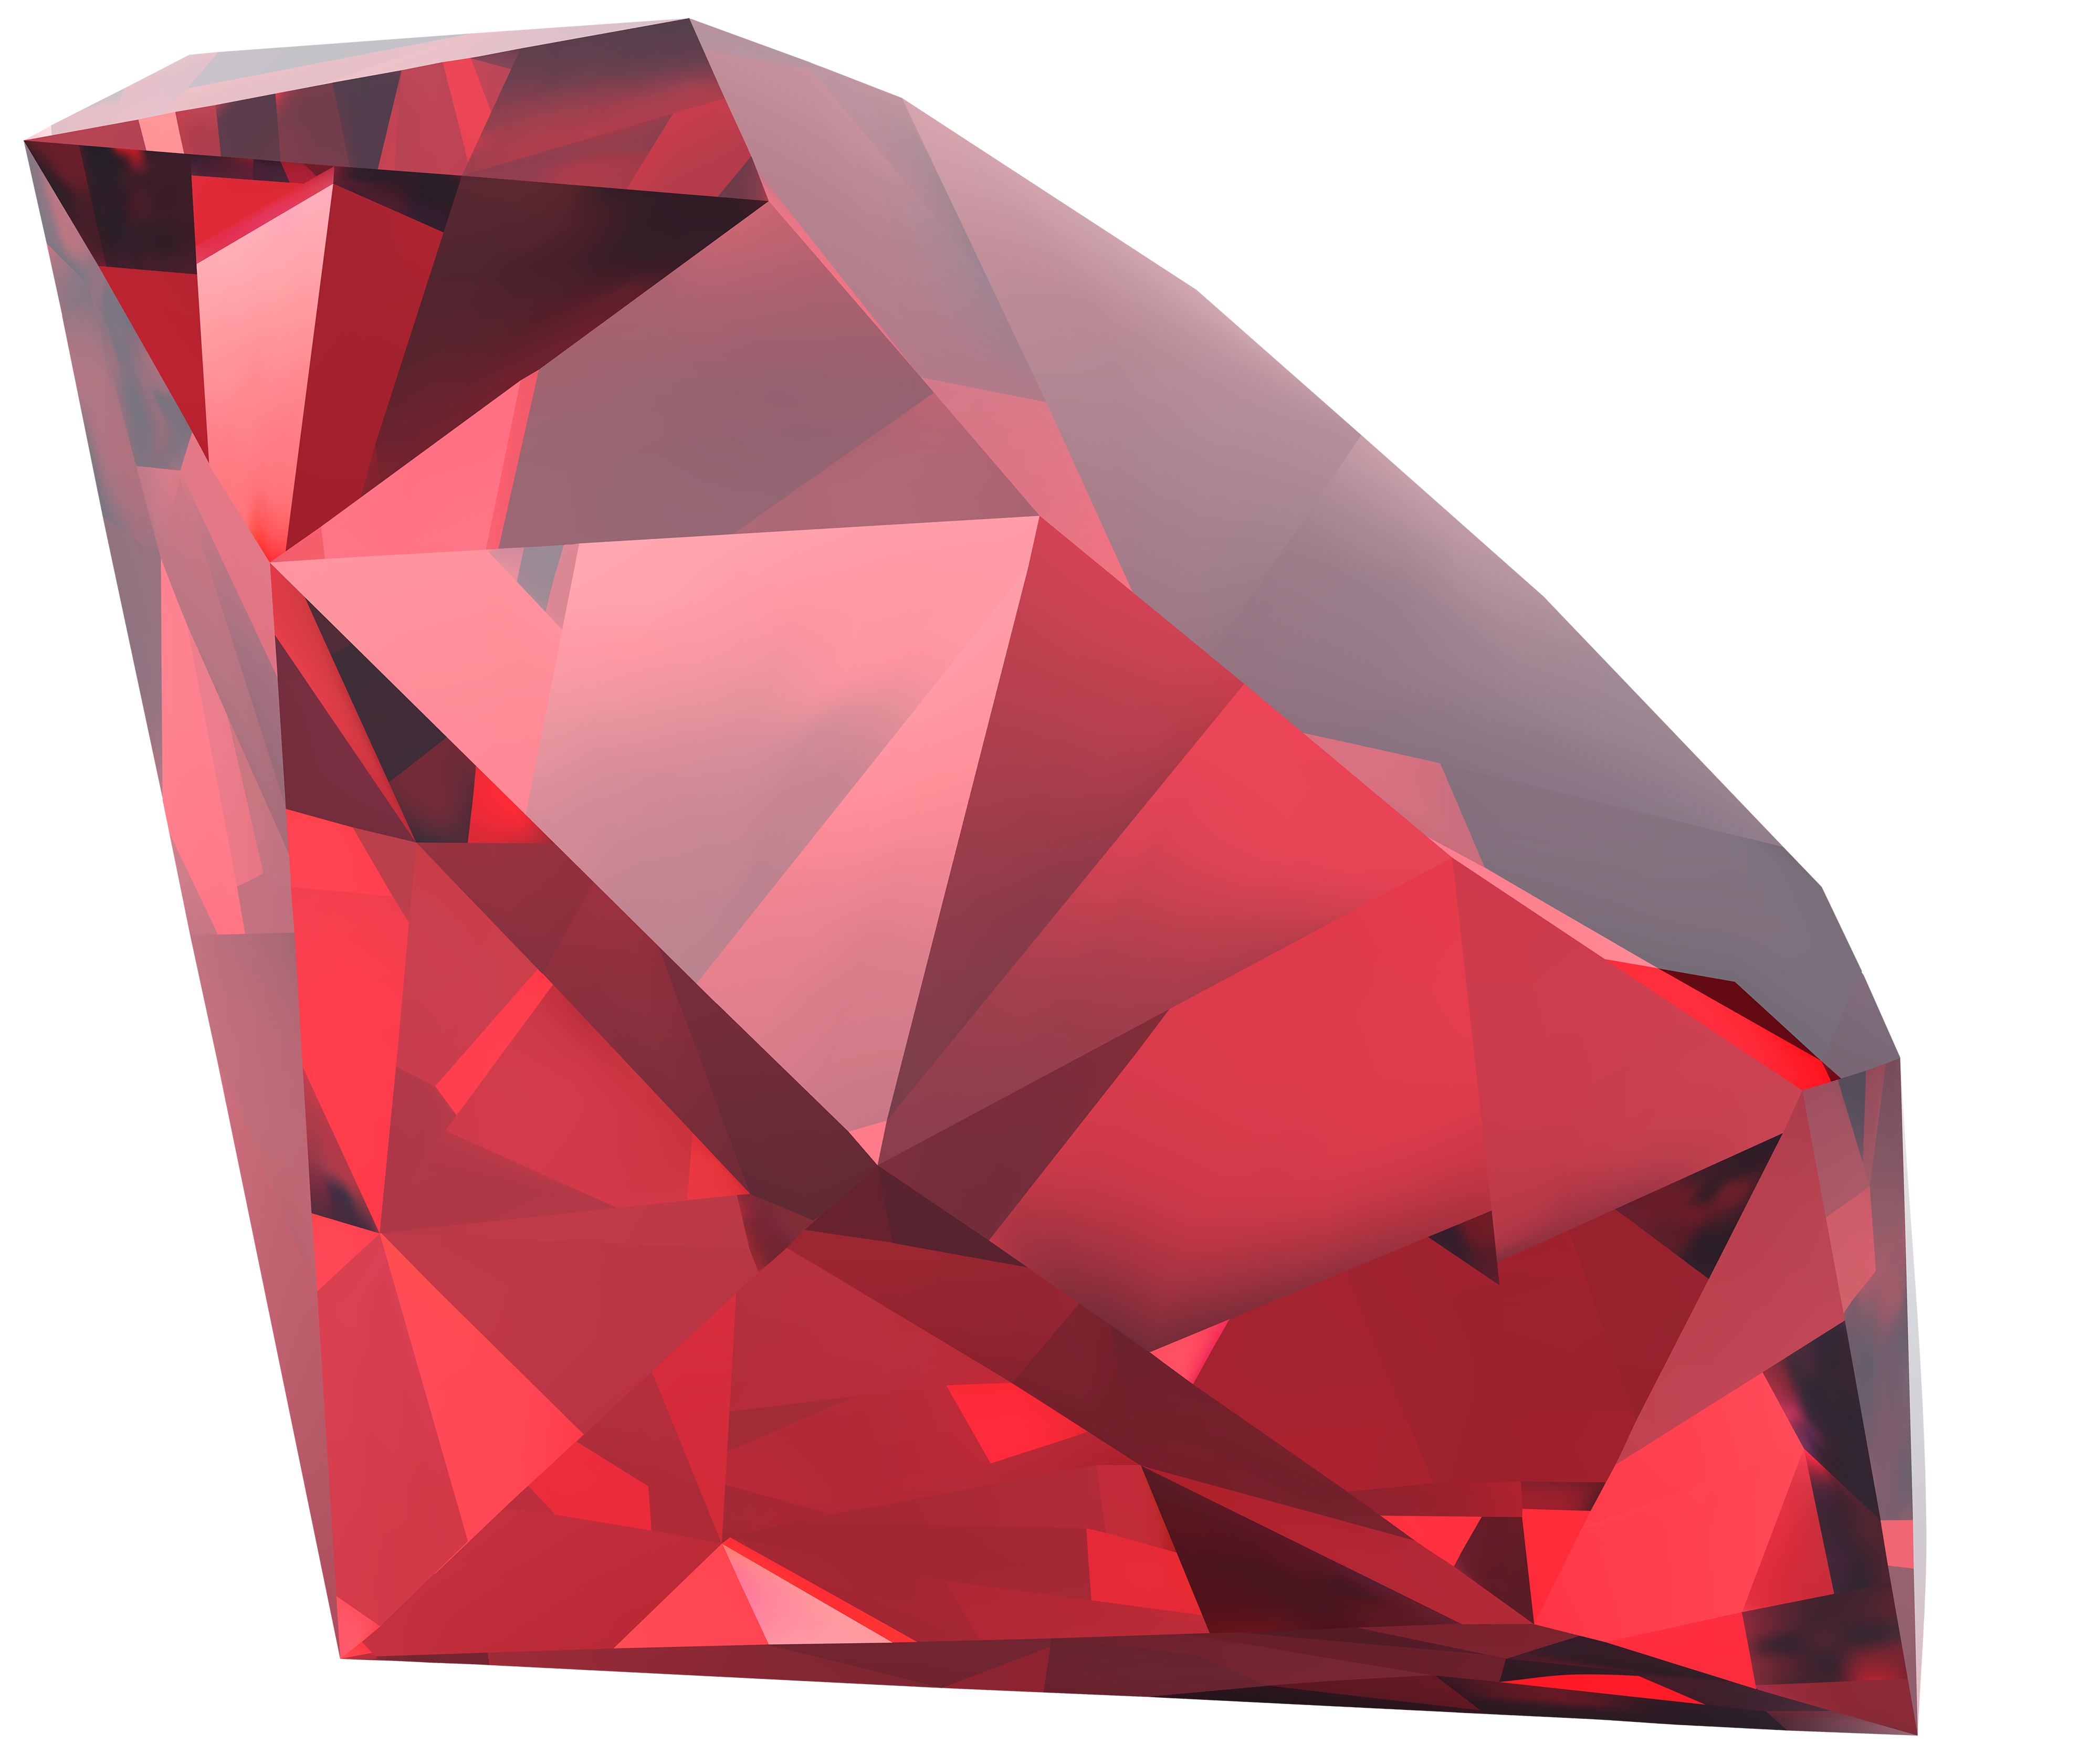 Diamond clipart card. Red png best web